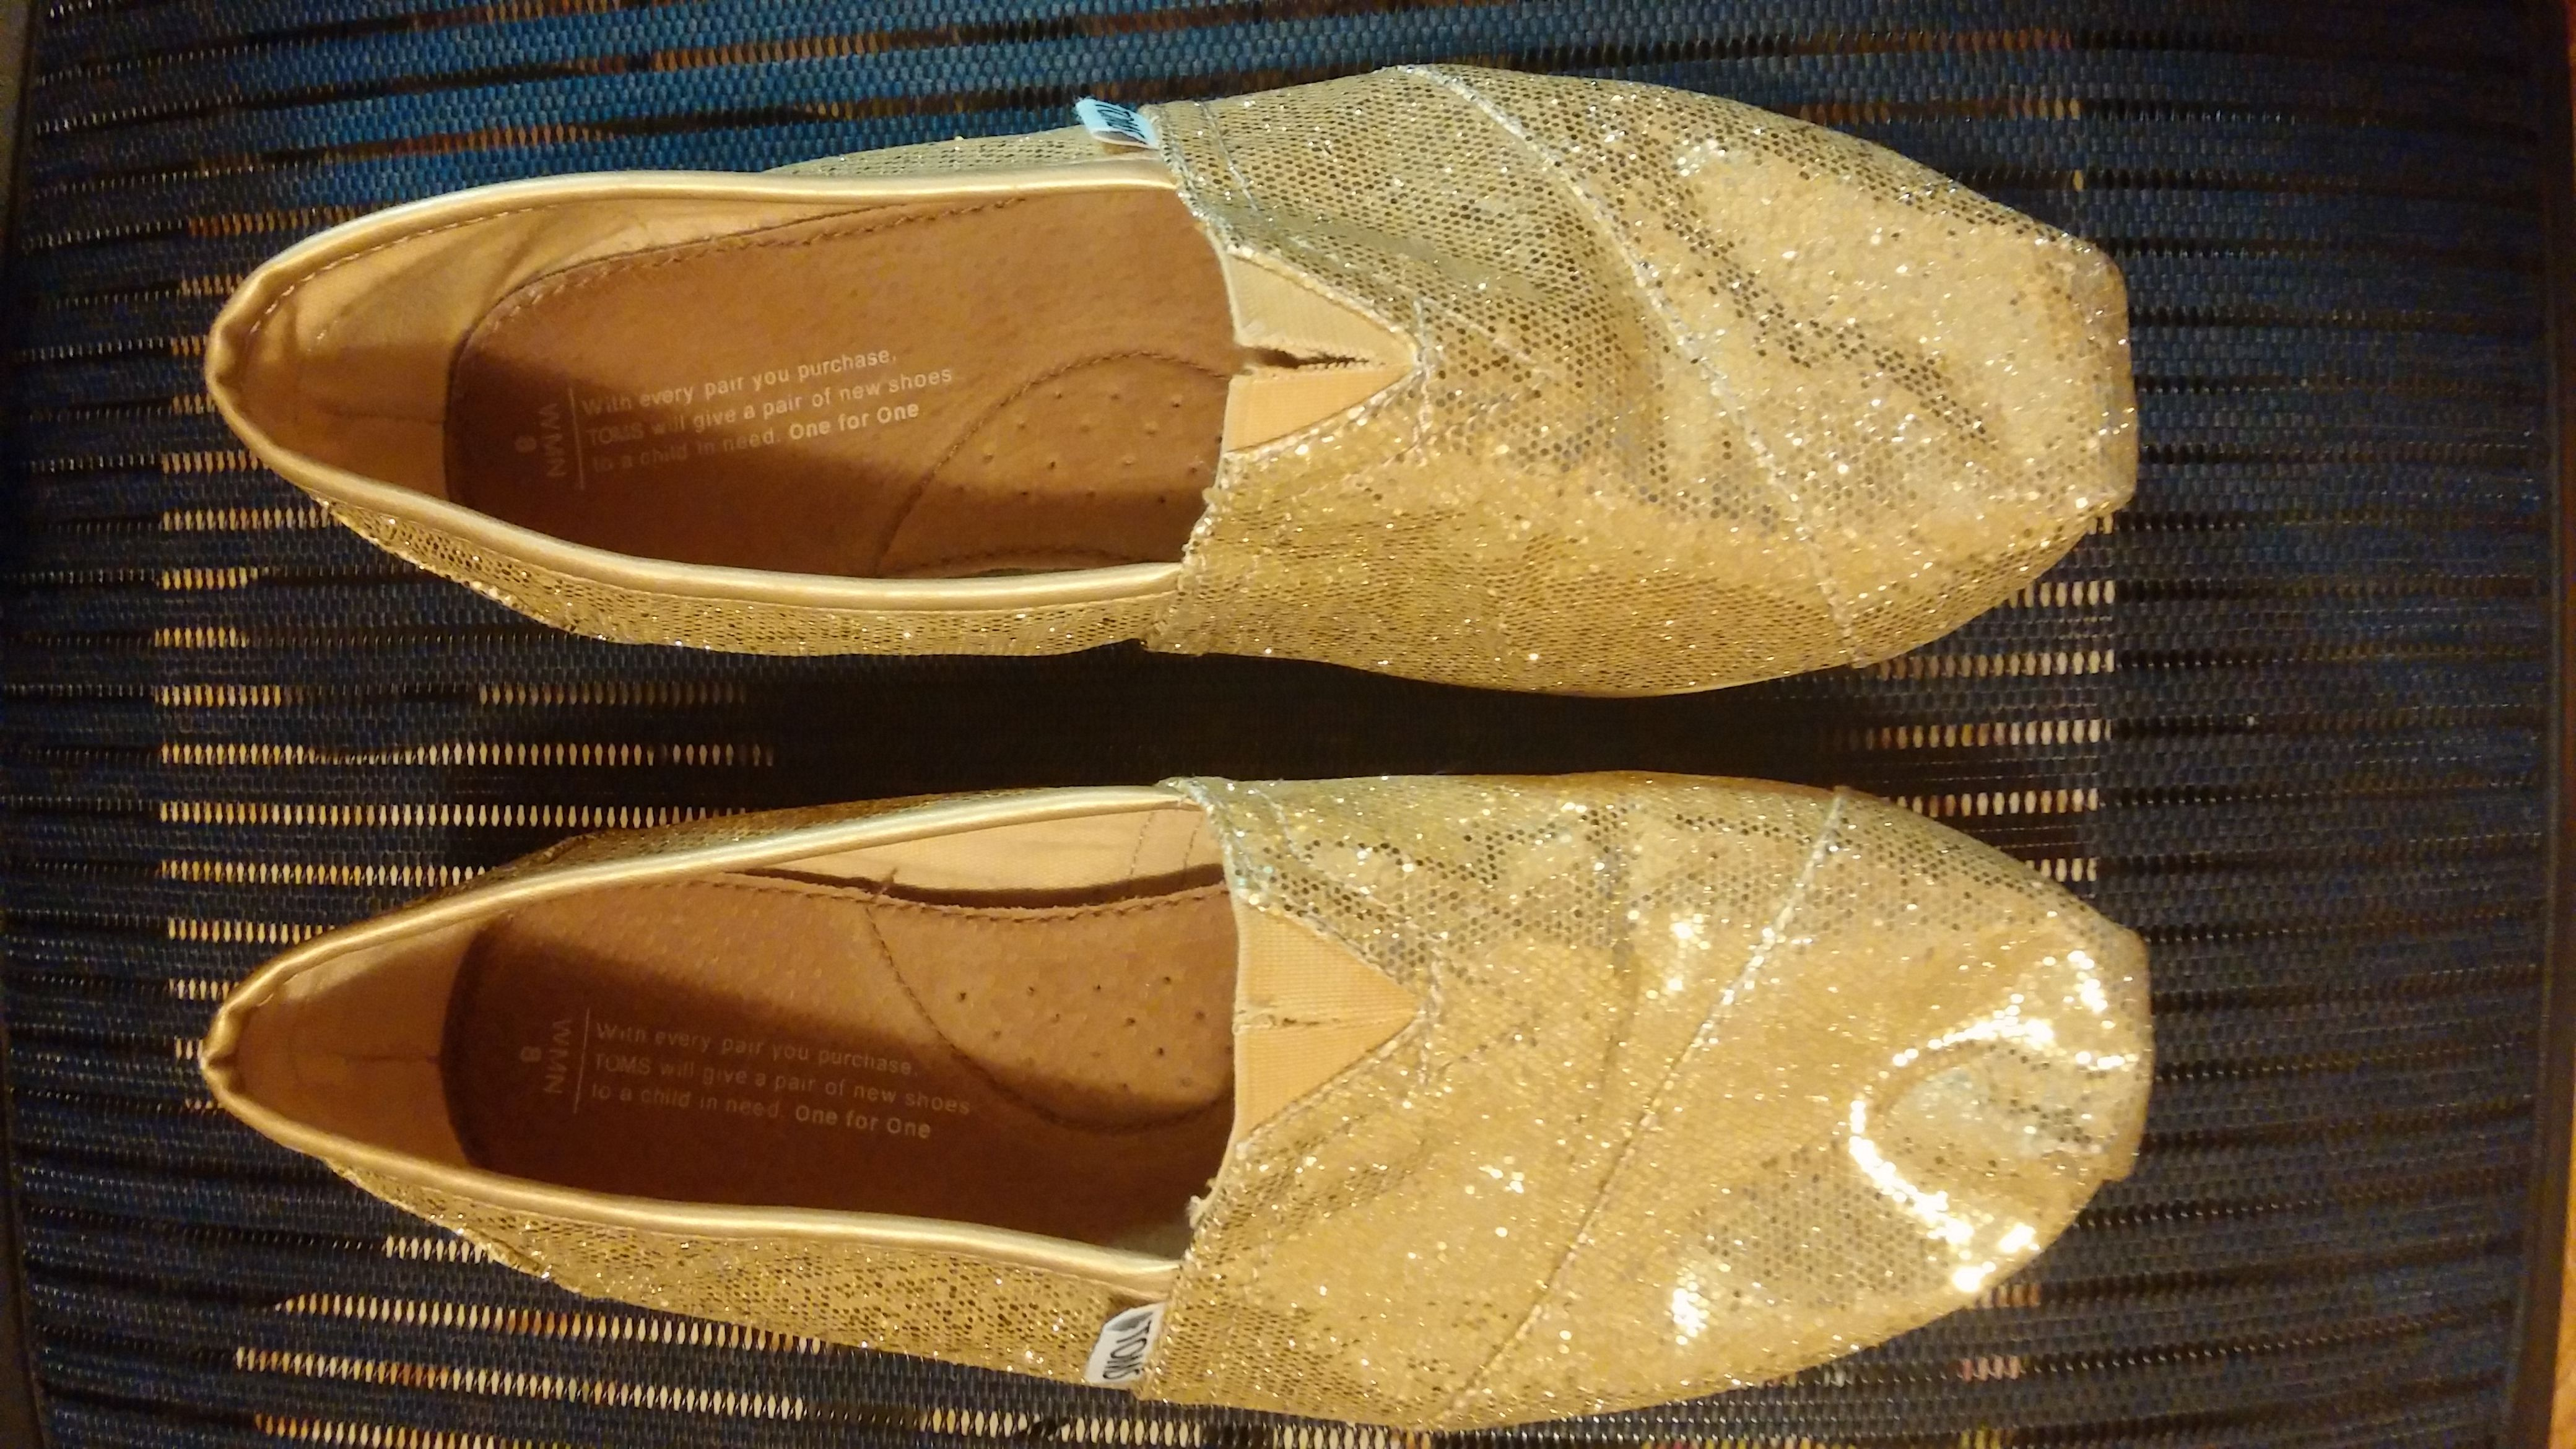 What could be better than these gold sequin Tom's? Reflective futuristic shoes that are probably sooo comfortable.